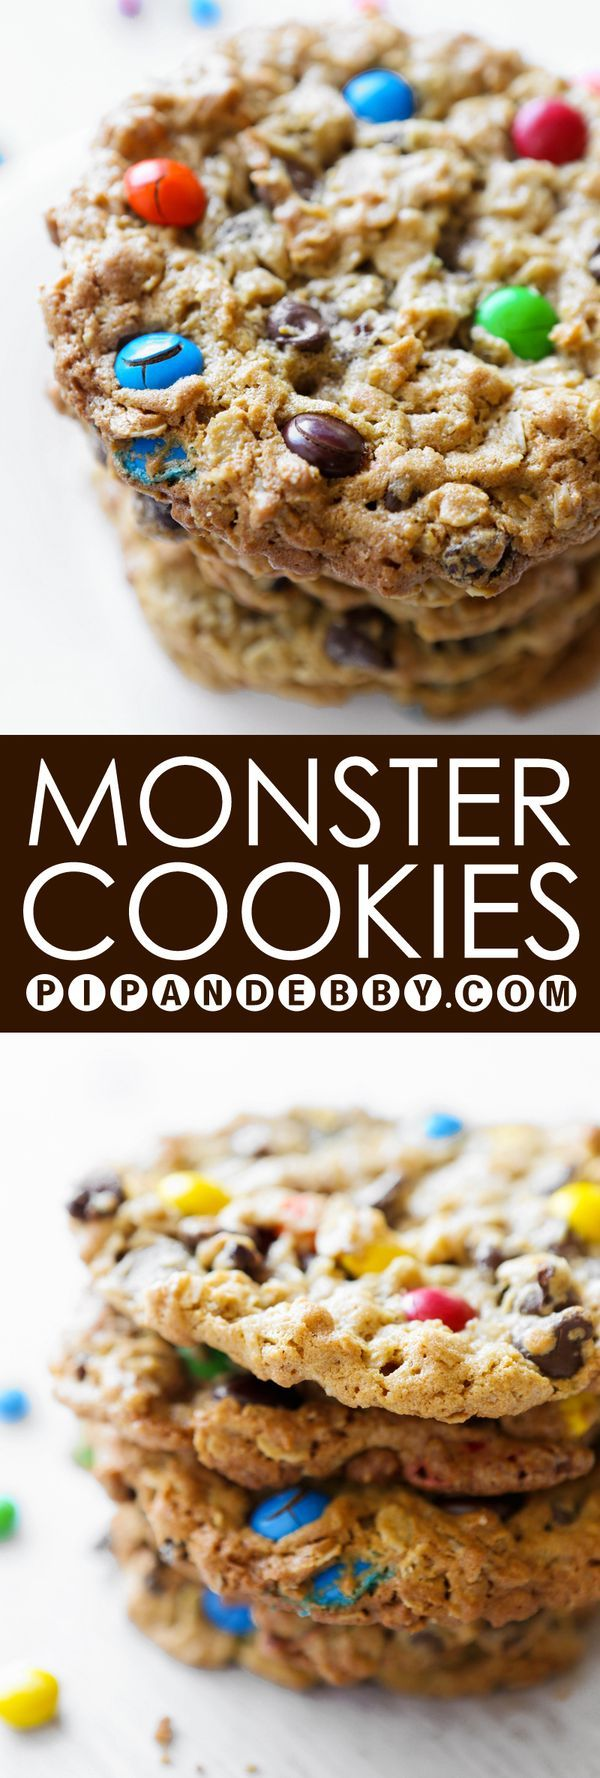 Monster Cookies in honor of Cookie Monster (and Sesame Street's new partnership with HBO!) - these are THE BEST cookies I have ever eaten, WITHOUT A DOUBT.